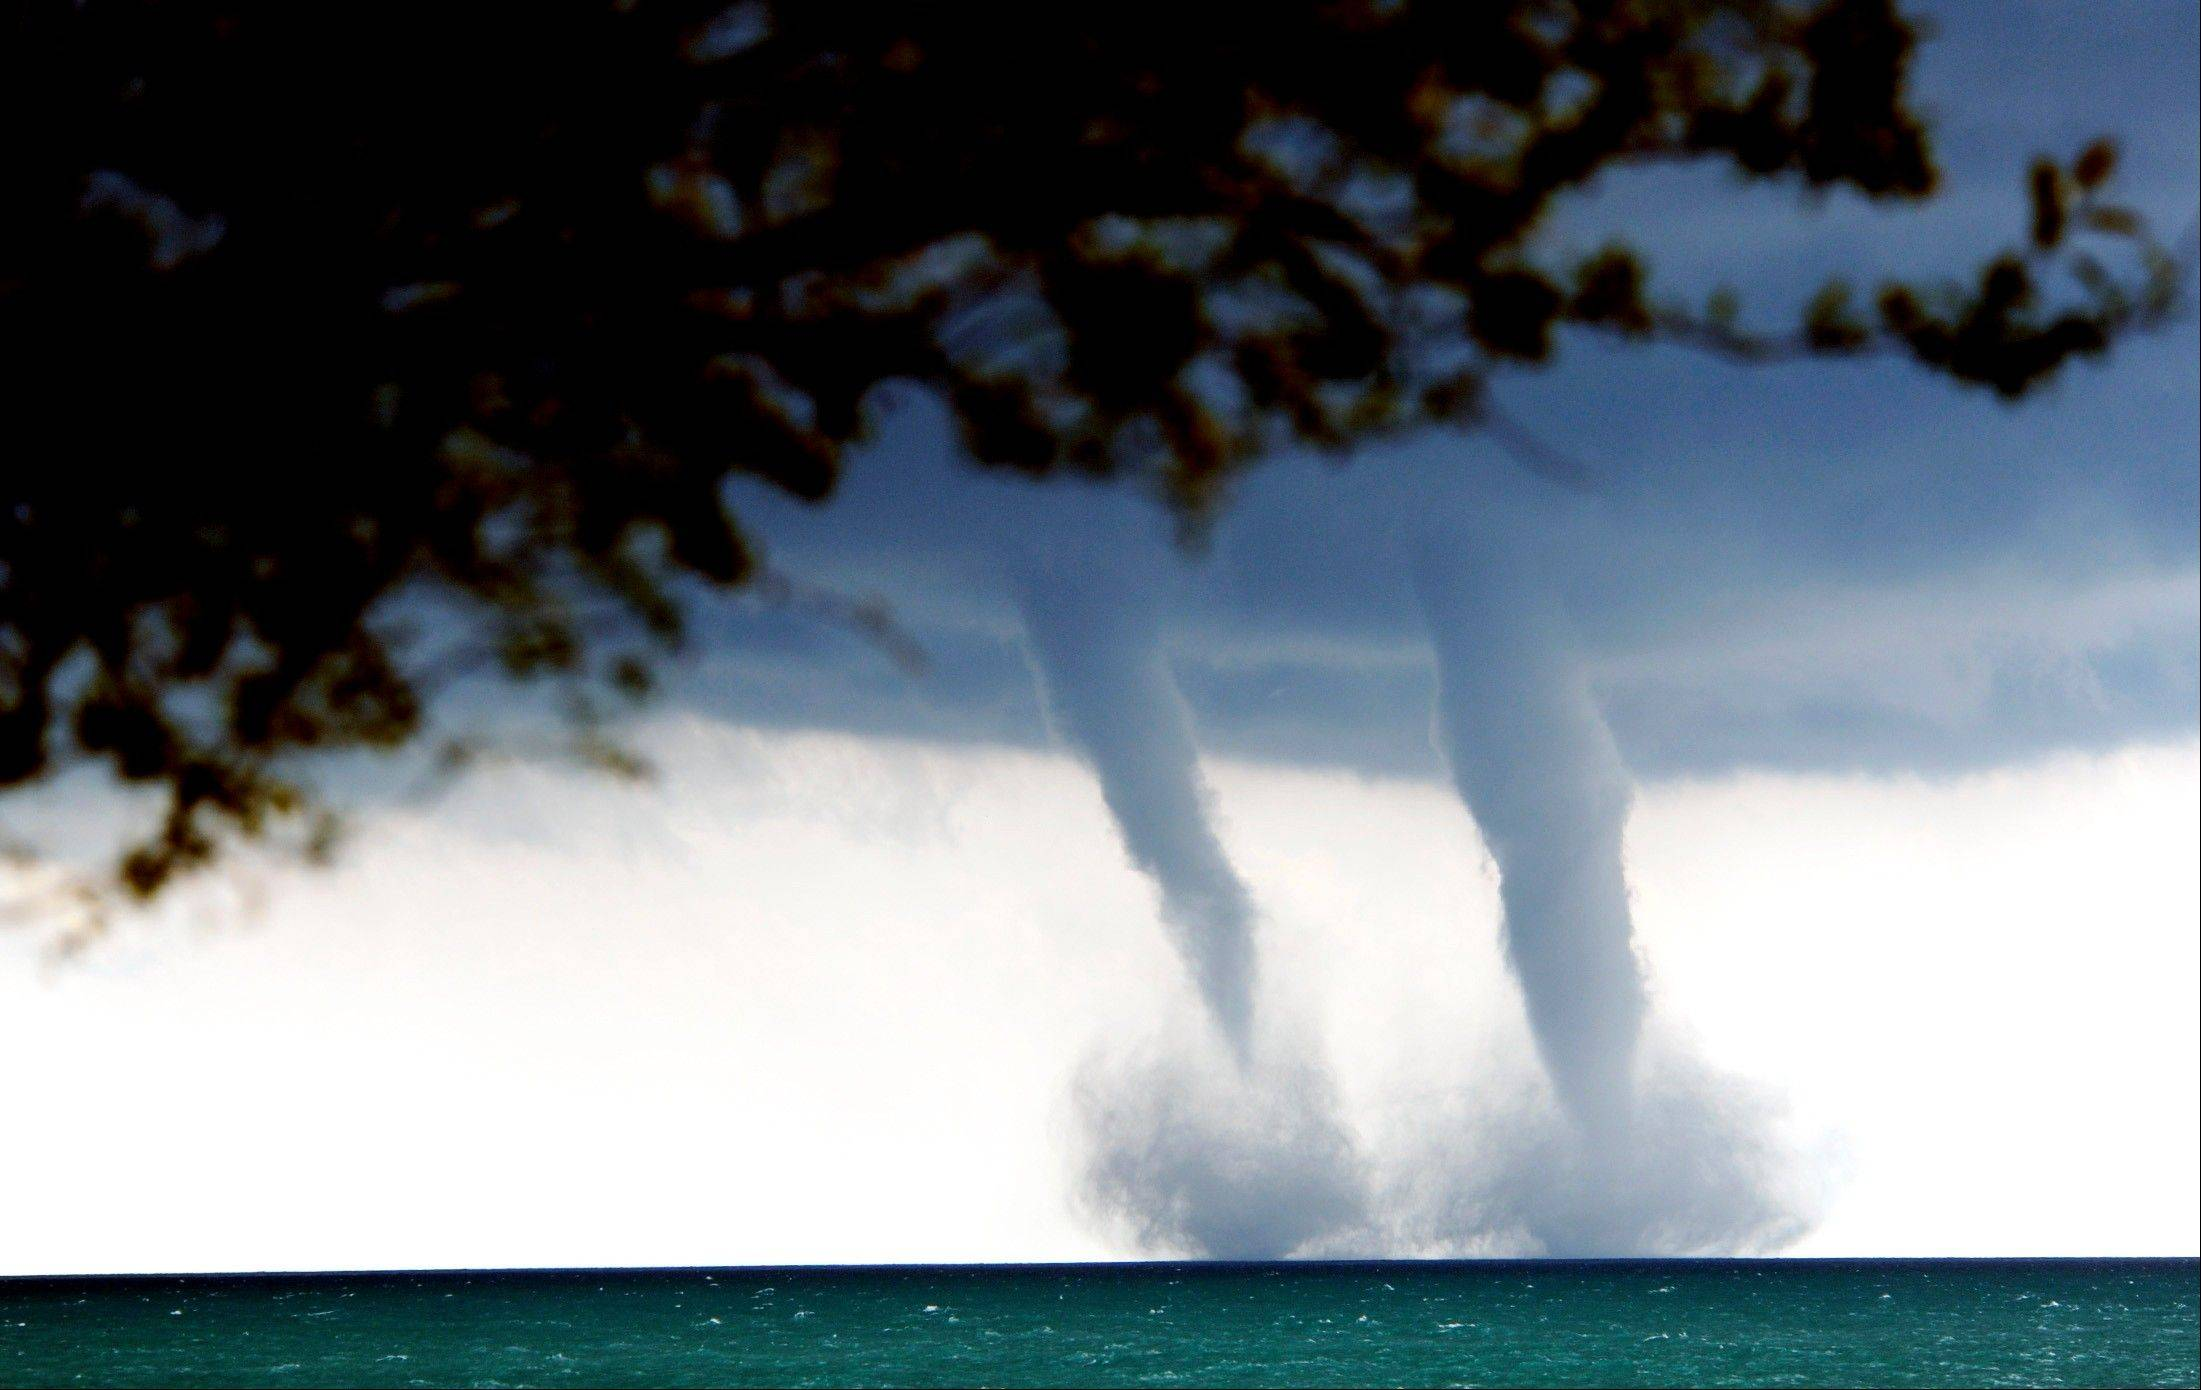 A pair of waterspouts were seen from downtown Waukegan and other lakefront suburbs Thursday. While waterspouts are basically tornadoes over water, they were no threat to land-dwellers.